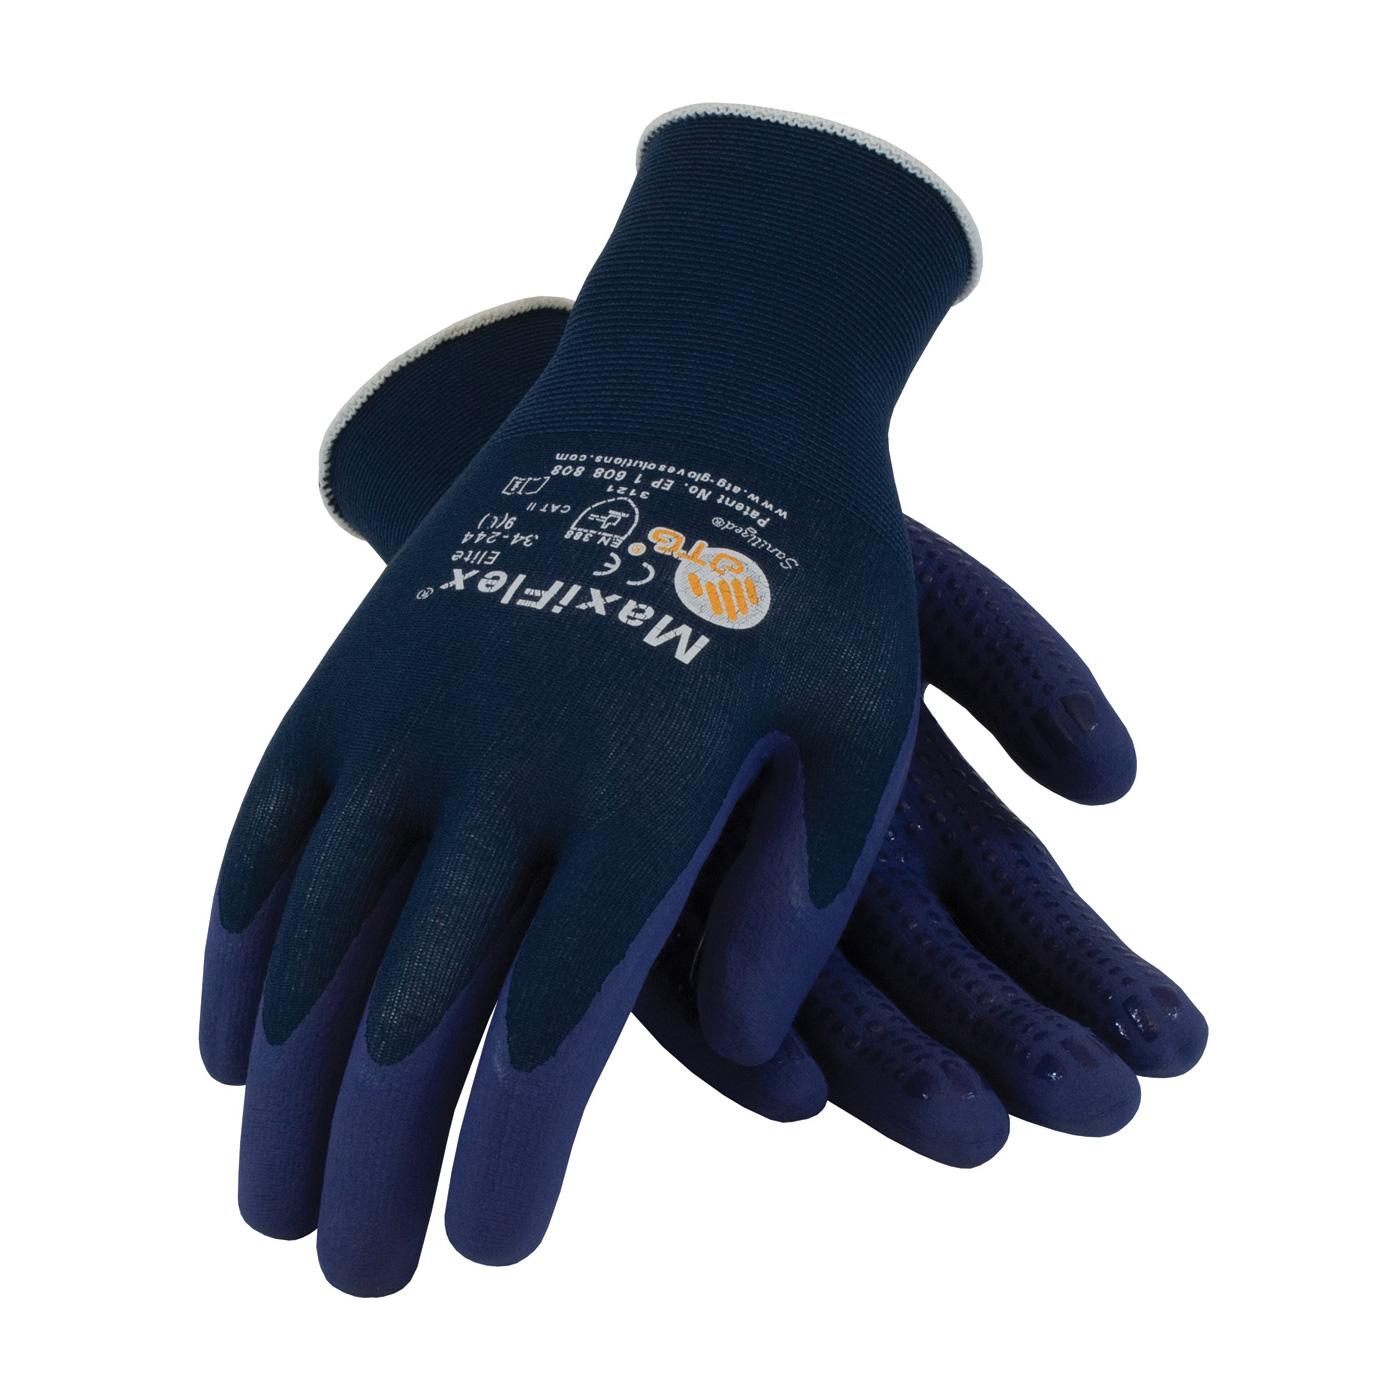 #34-244 MaxiFlex® Elite™ Nylon Gloves feature a nitrile dotted palm with a blue palm and fingertip coating